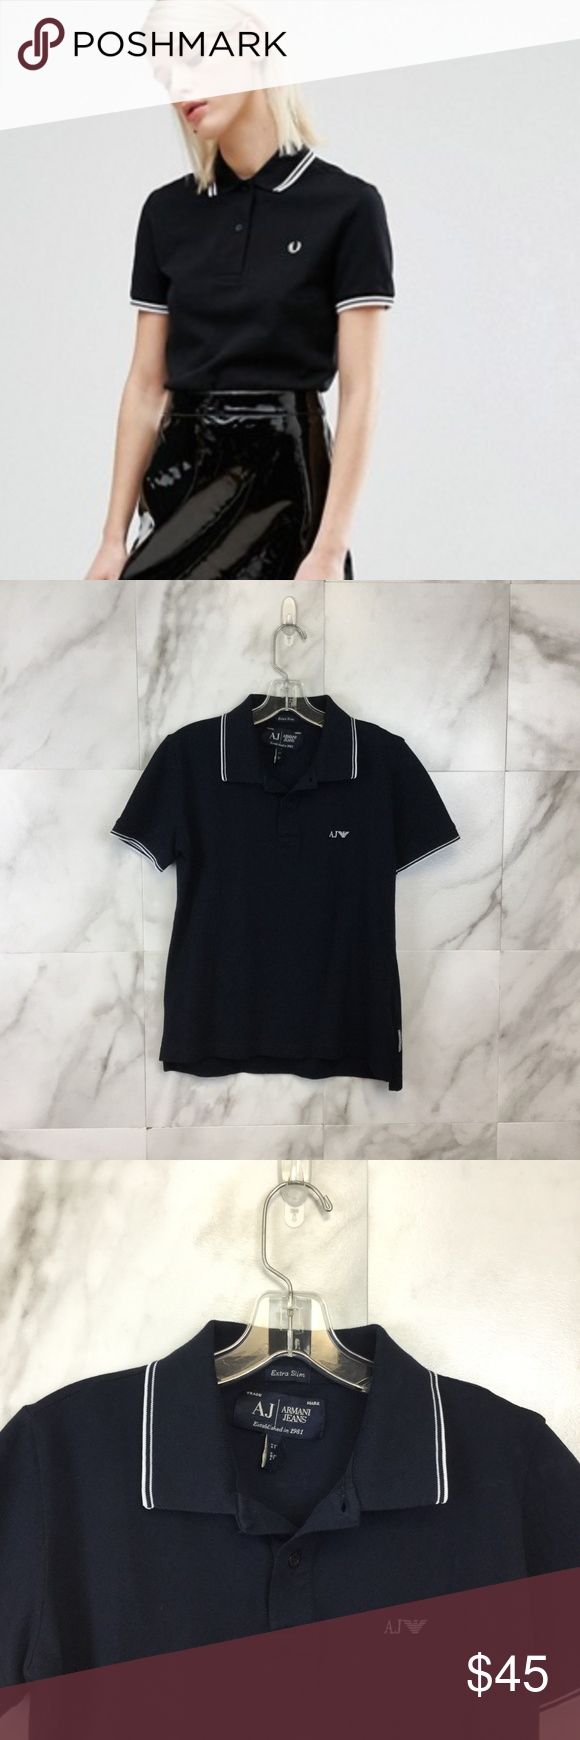 60de2581 Armani Jeans Fred Perry Twin Tipped Polo - Size L Armani Jeans Fred Perry Twin  Tipped